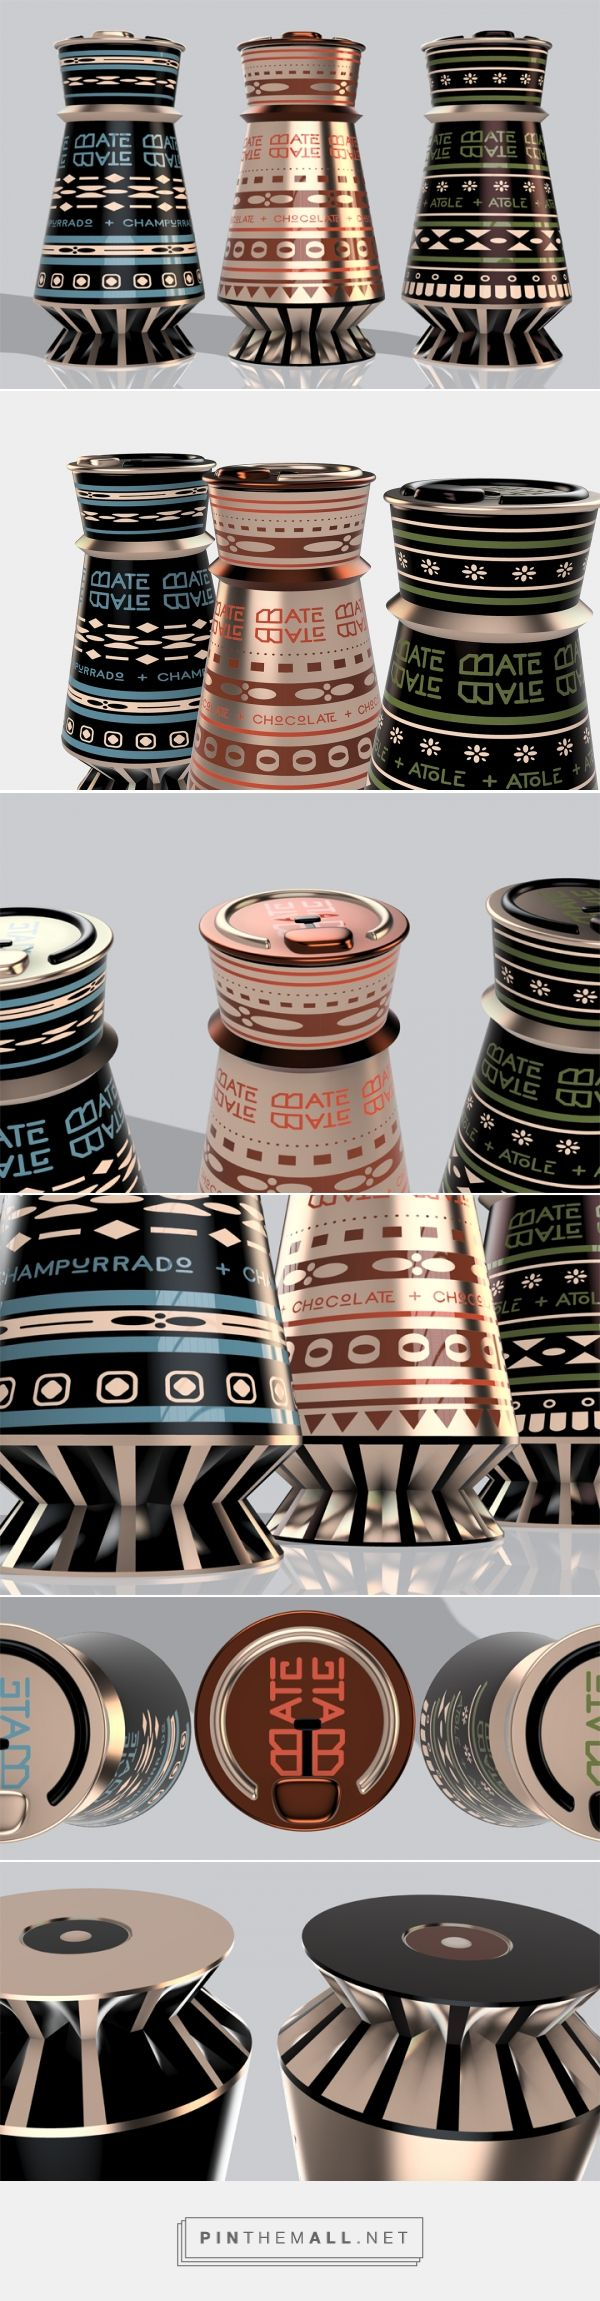 """Bate Bate drinks (concept) by Wenzdai J. Figueroa. """"Branding and sustainable packaging for fictional brand Bate Bate, which in Spanish means """"twirl twirl"""". Taking inspiration from traditional Mexican tools used to make the beverage, the sustainable self-heating packaging brings the taste of home on the go."""" Source: Behance. Pin curated by #SFields99 #packaging #design #inspiration #concept #structural #beverages"""